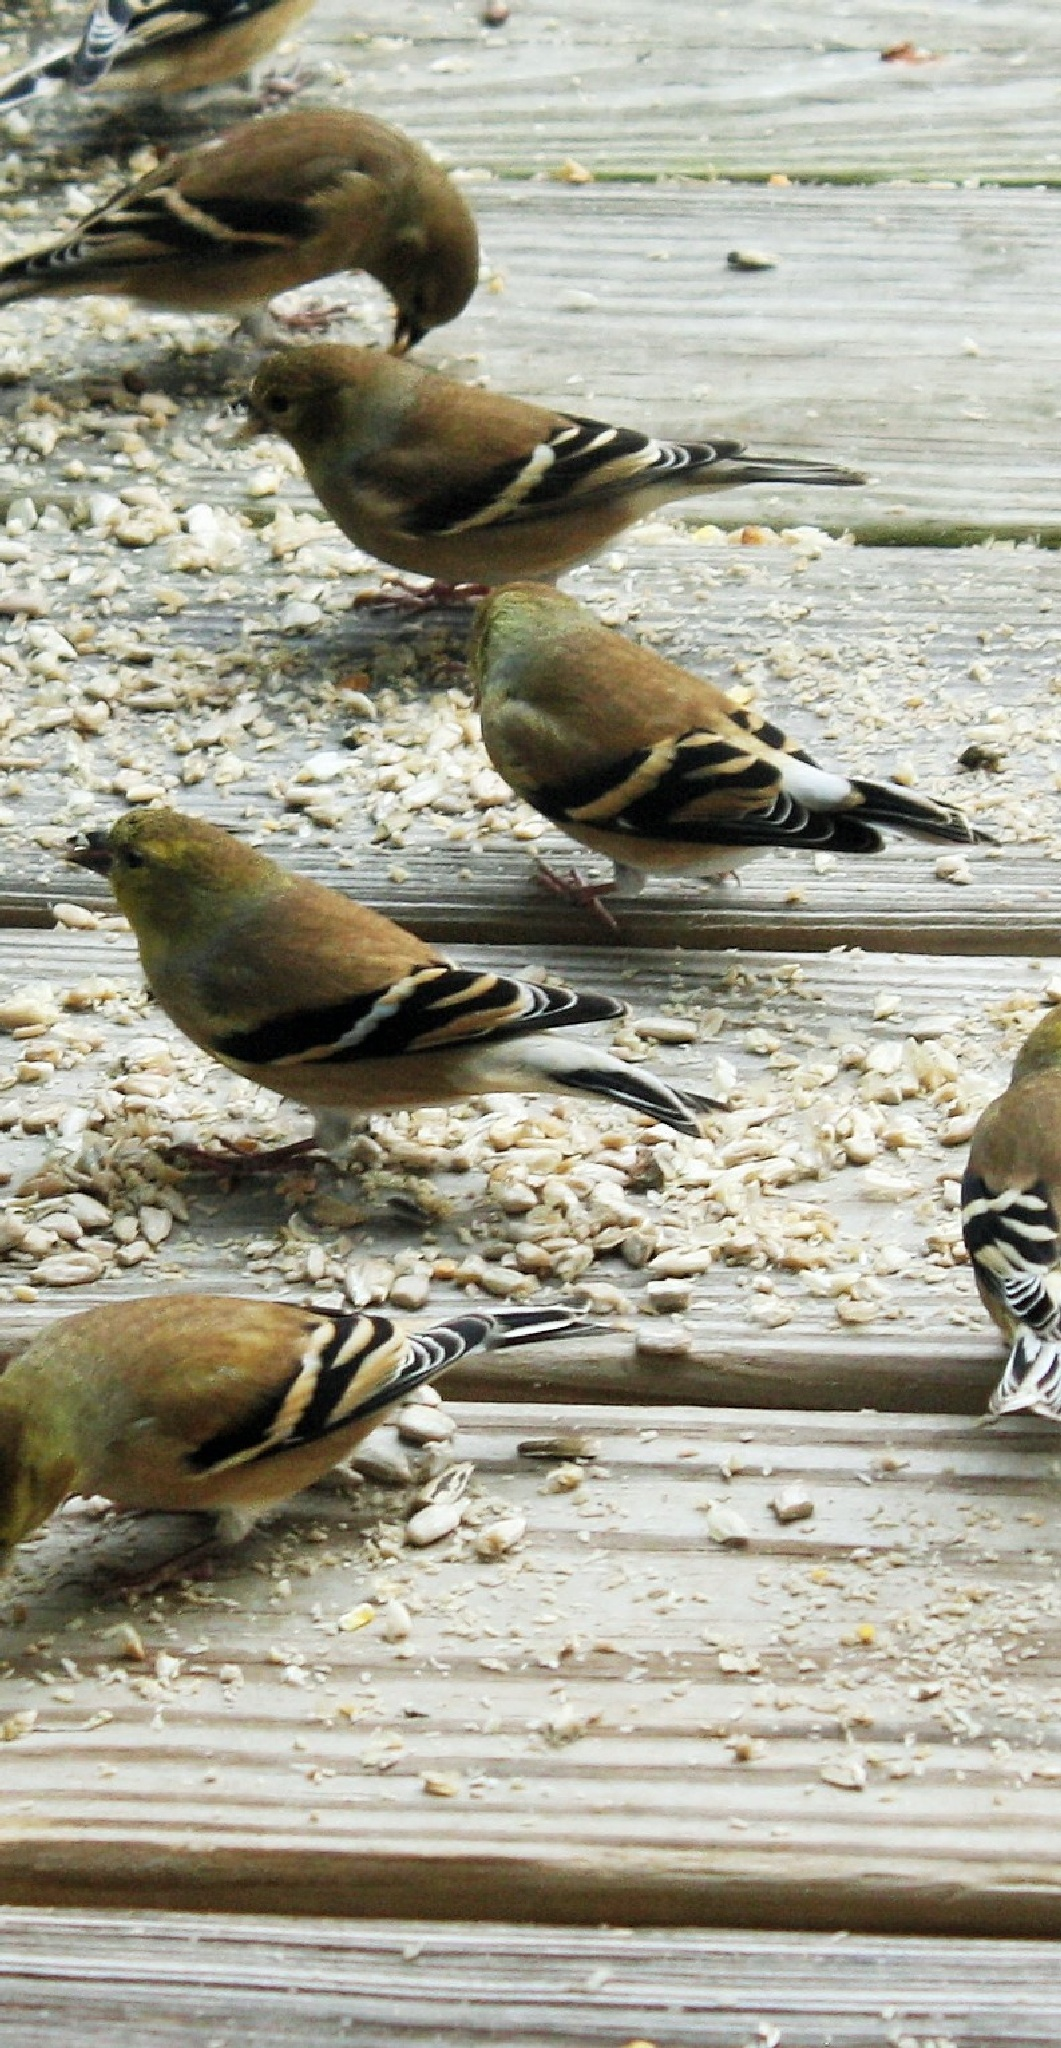 Finches all in a row by joann.kunkle